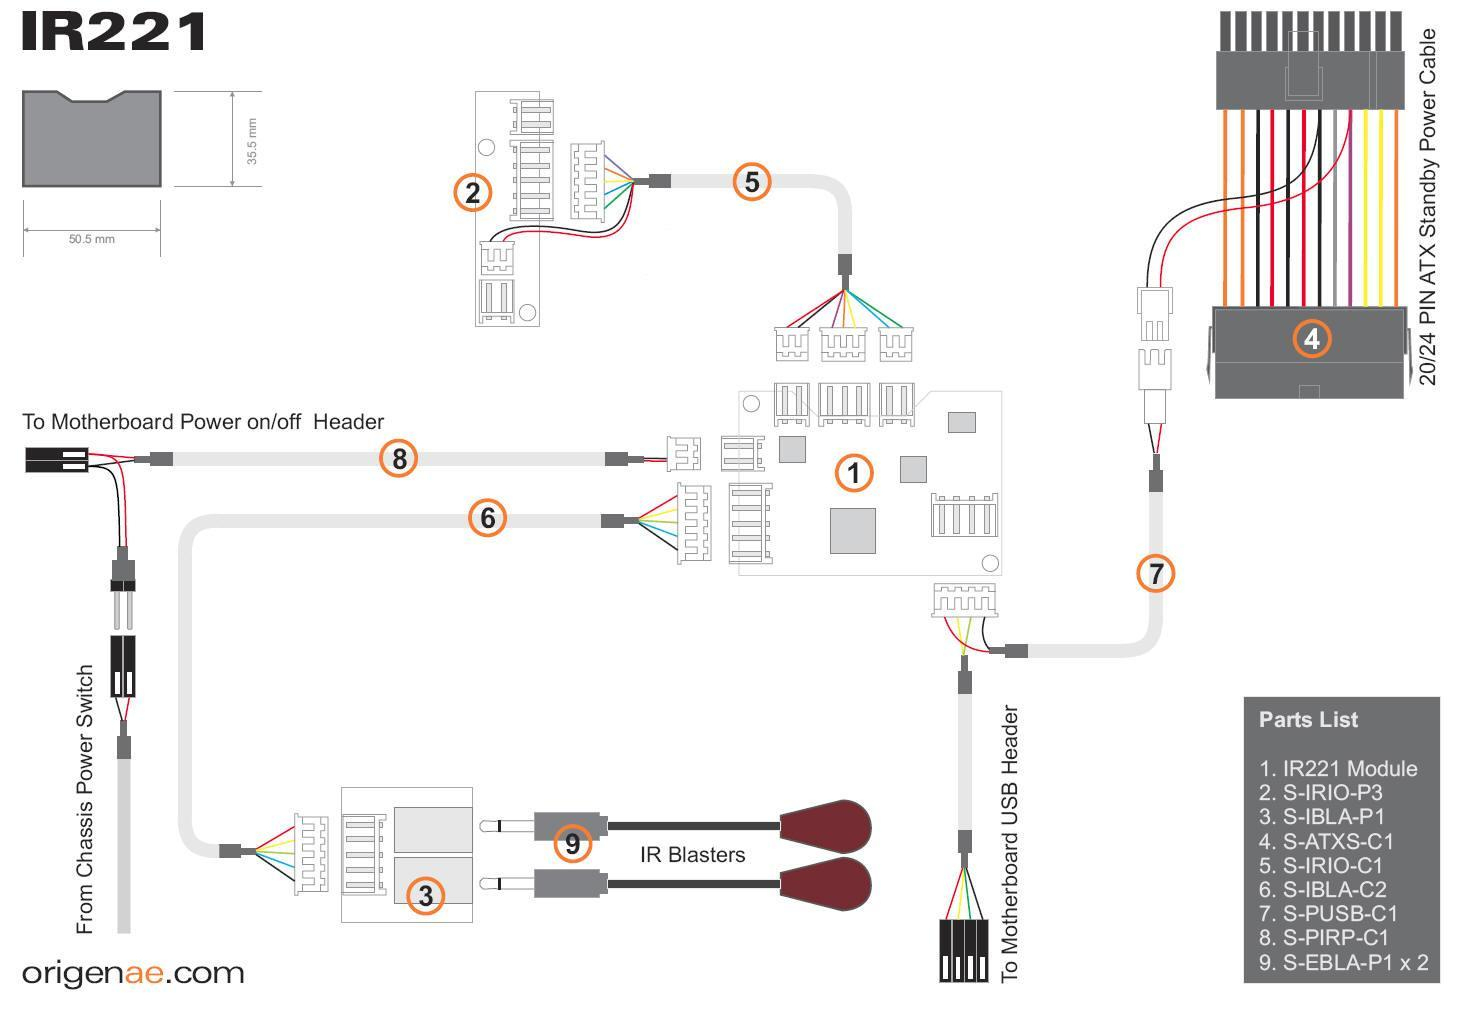 Ide Wiring Diagram | Wiring Library - Usb Adapter Wiring Diagram